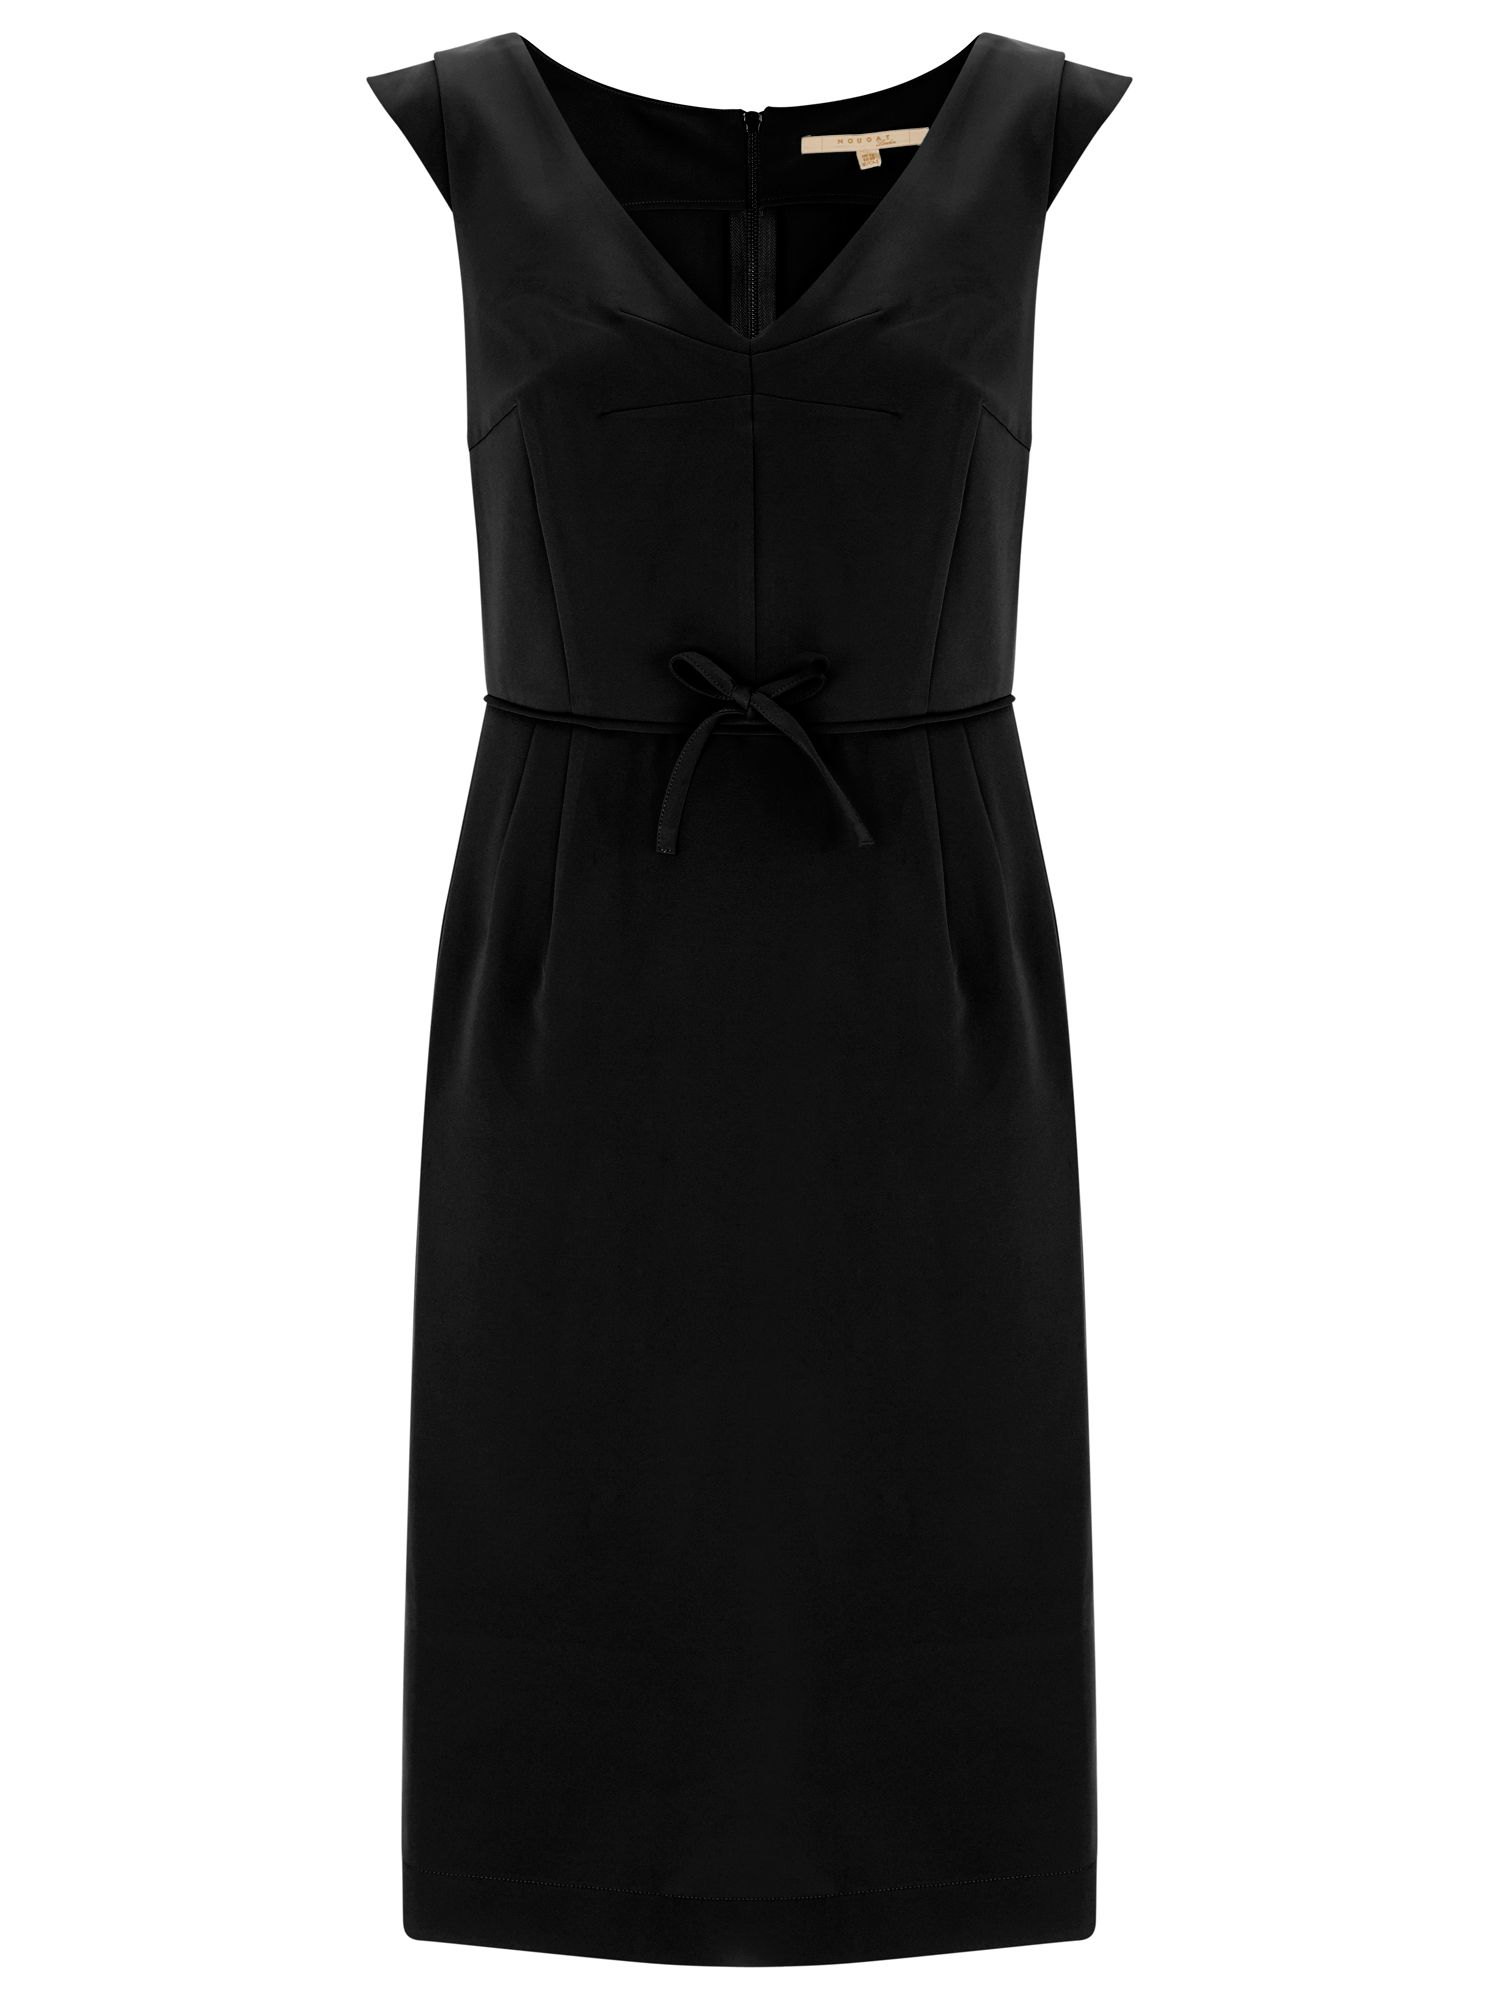 Nougat London Chelsea Cap Sleeve Dress, Black